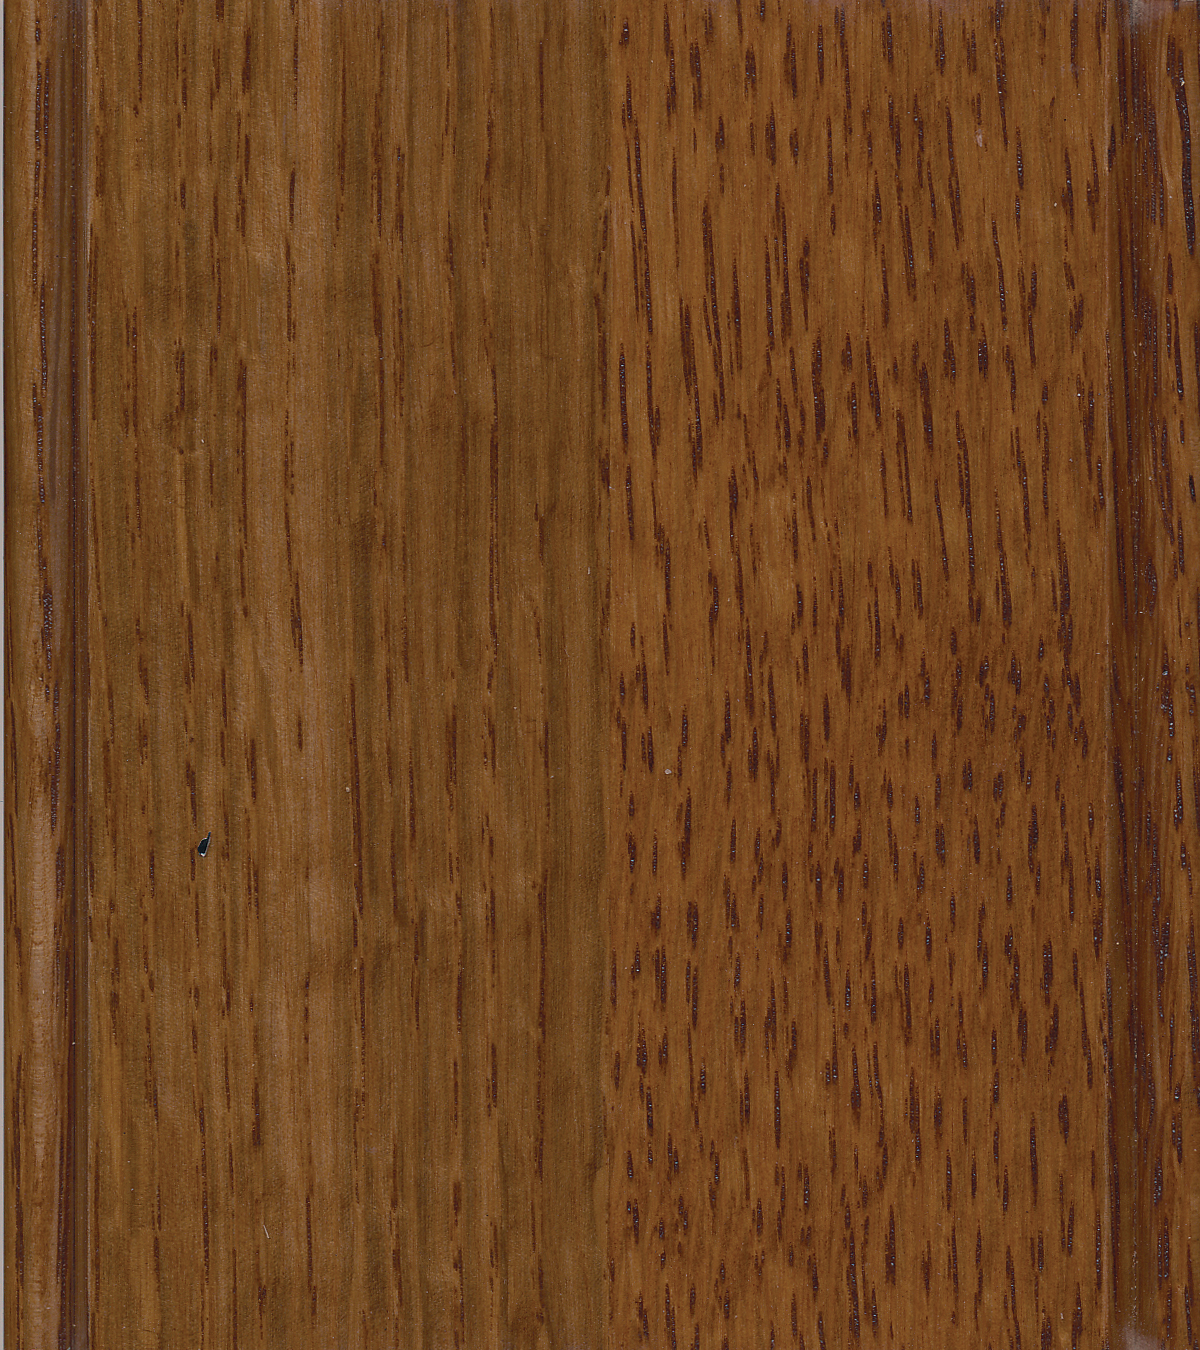 Quarter Sawn White Oak: Copper Qtr Sawn